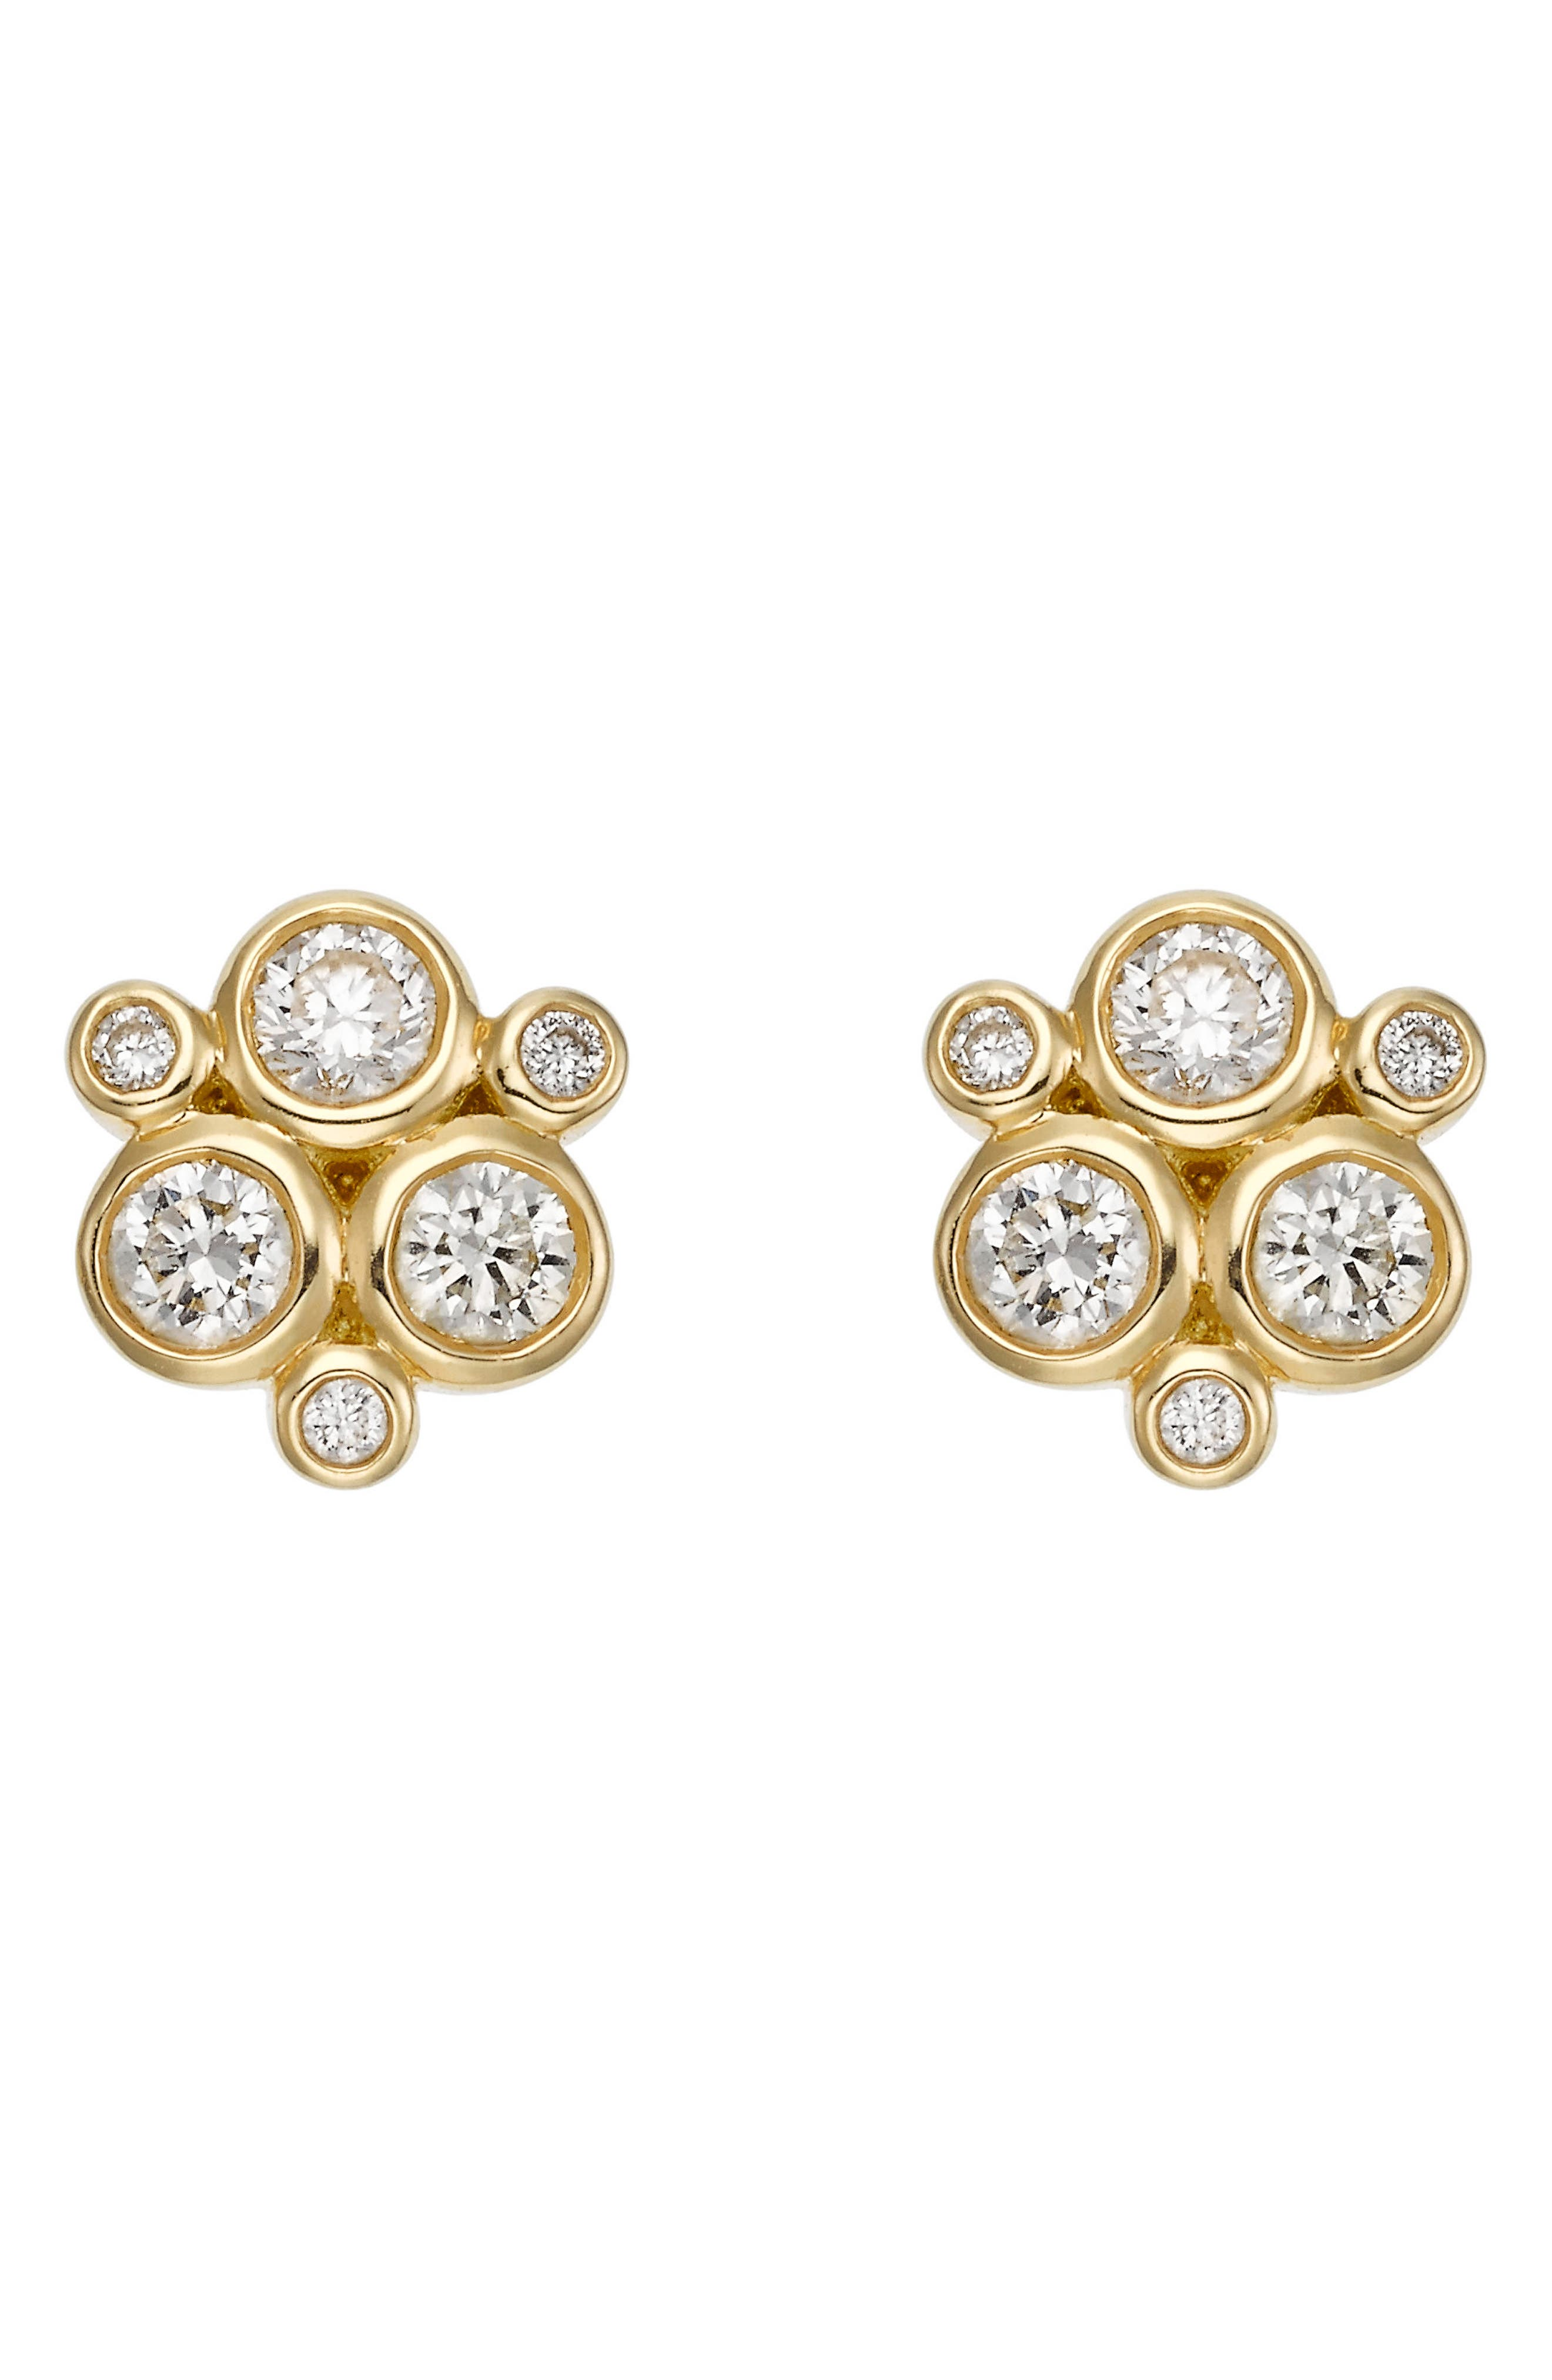 Temple St. Clair Diamond Stud Earrings,                             Main thumbnail 1, color,                             YELLOW GOLD